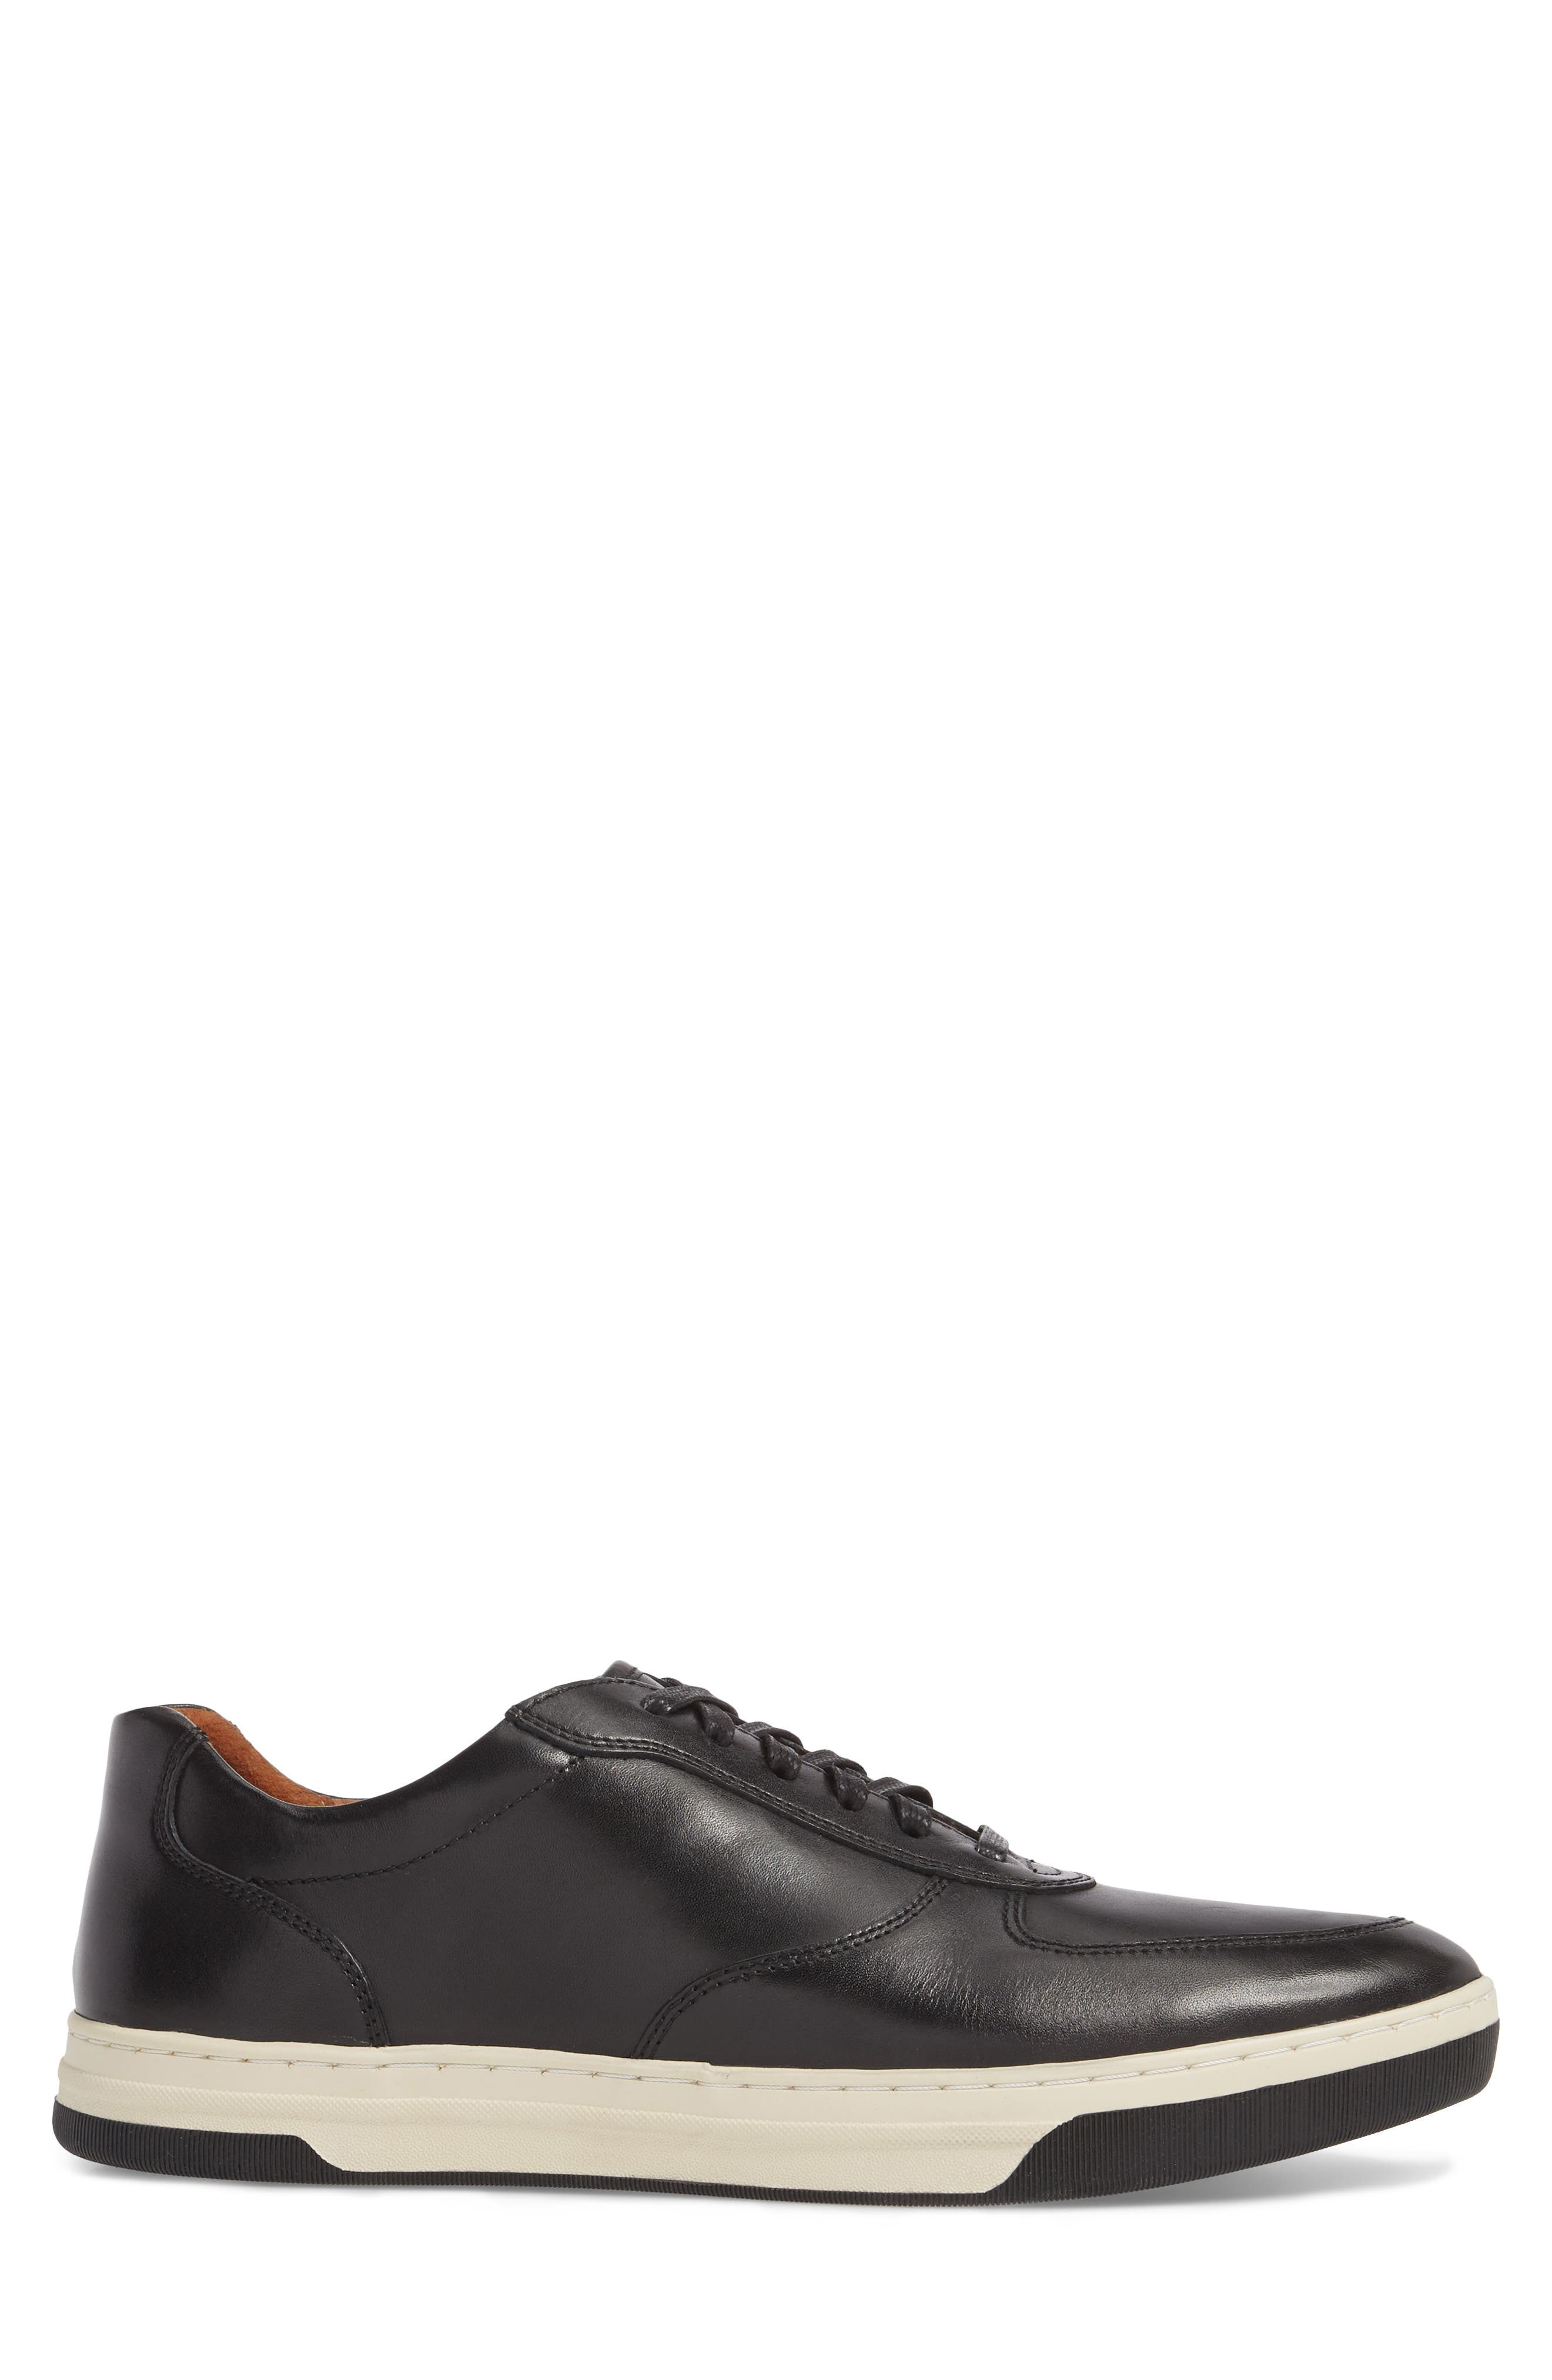 Fenton Low Top Sneaker,                             Alternate thumbnail 3, color,                             Black Leather